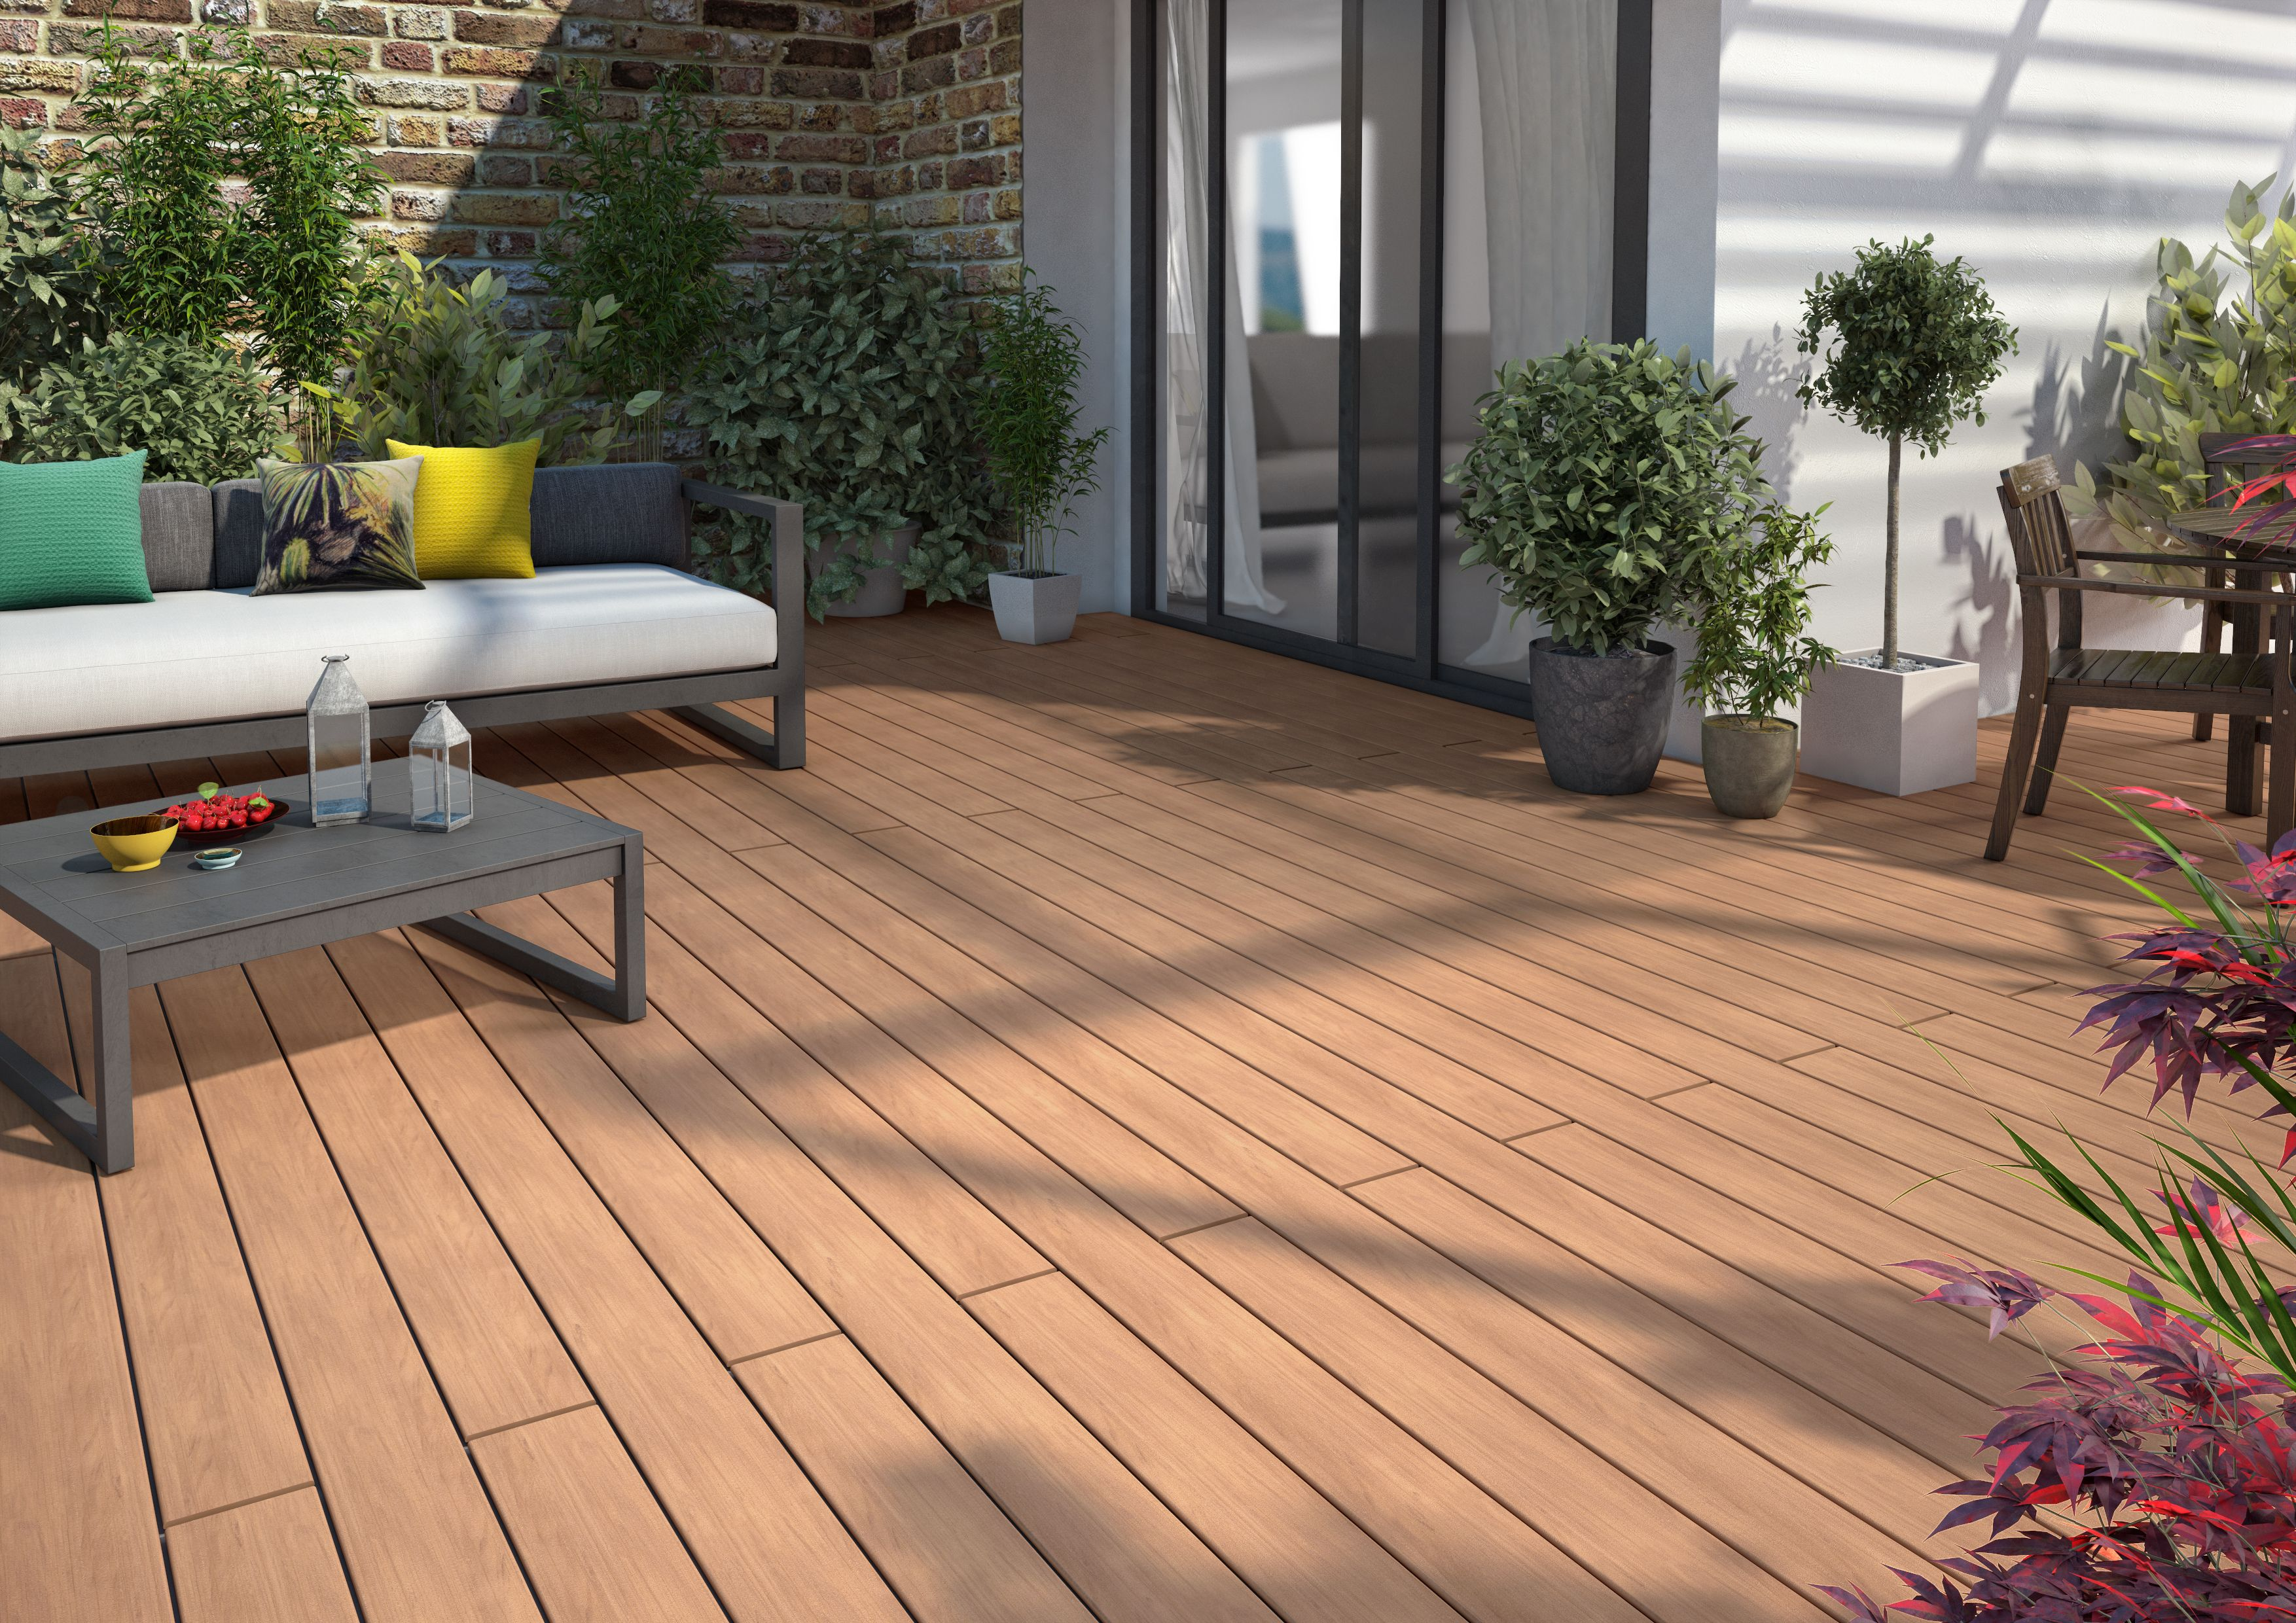 Silvadec Decking Terrace Home Wpc Silvadec Decking